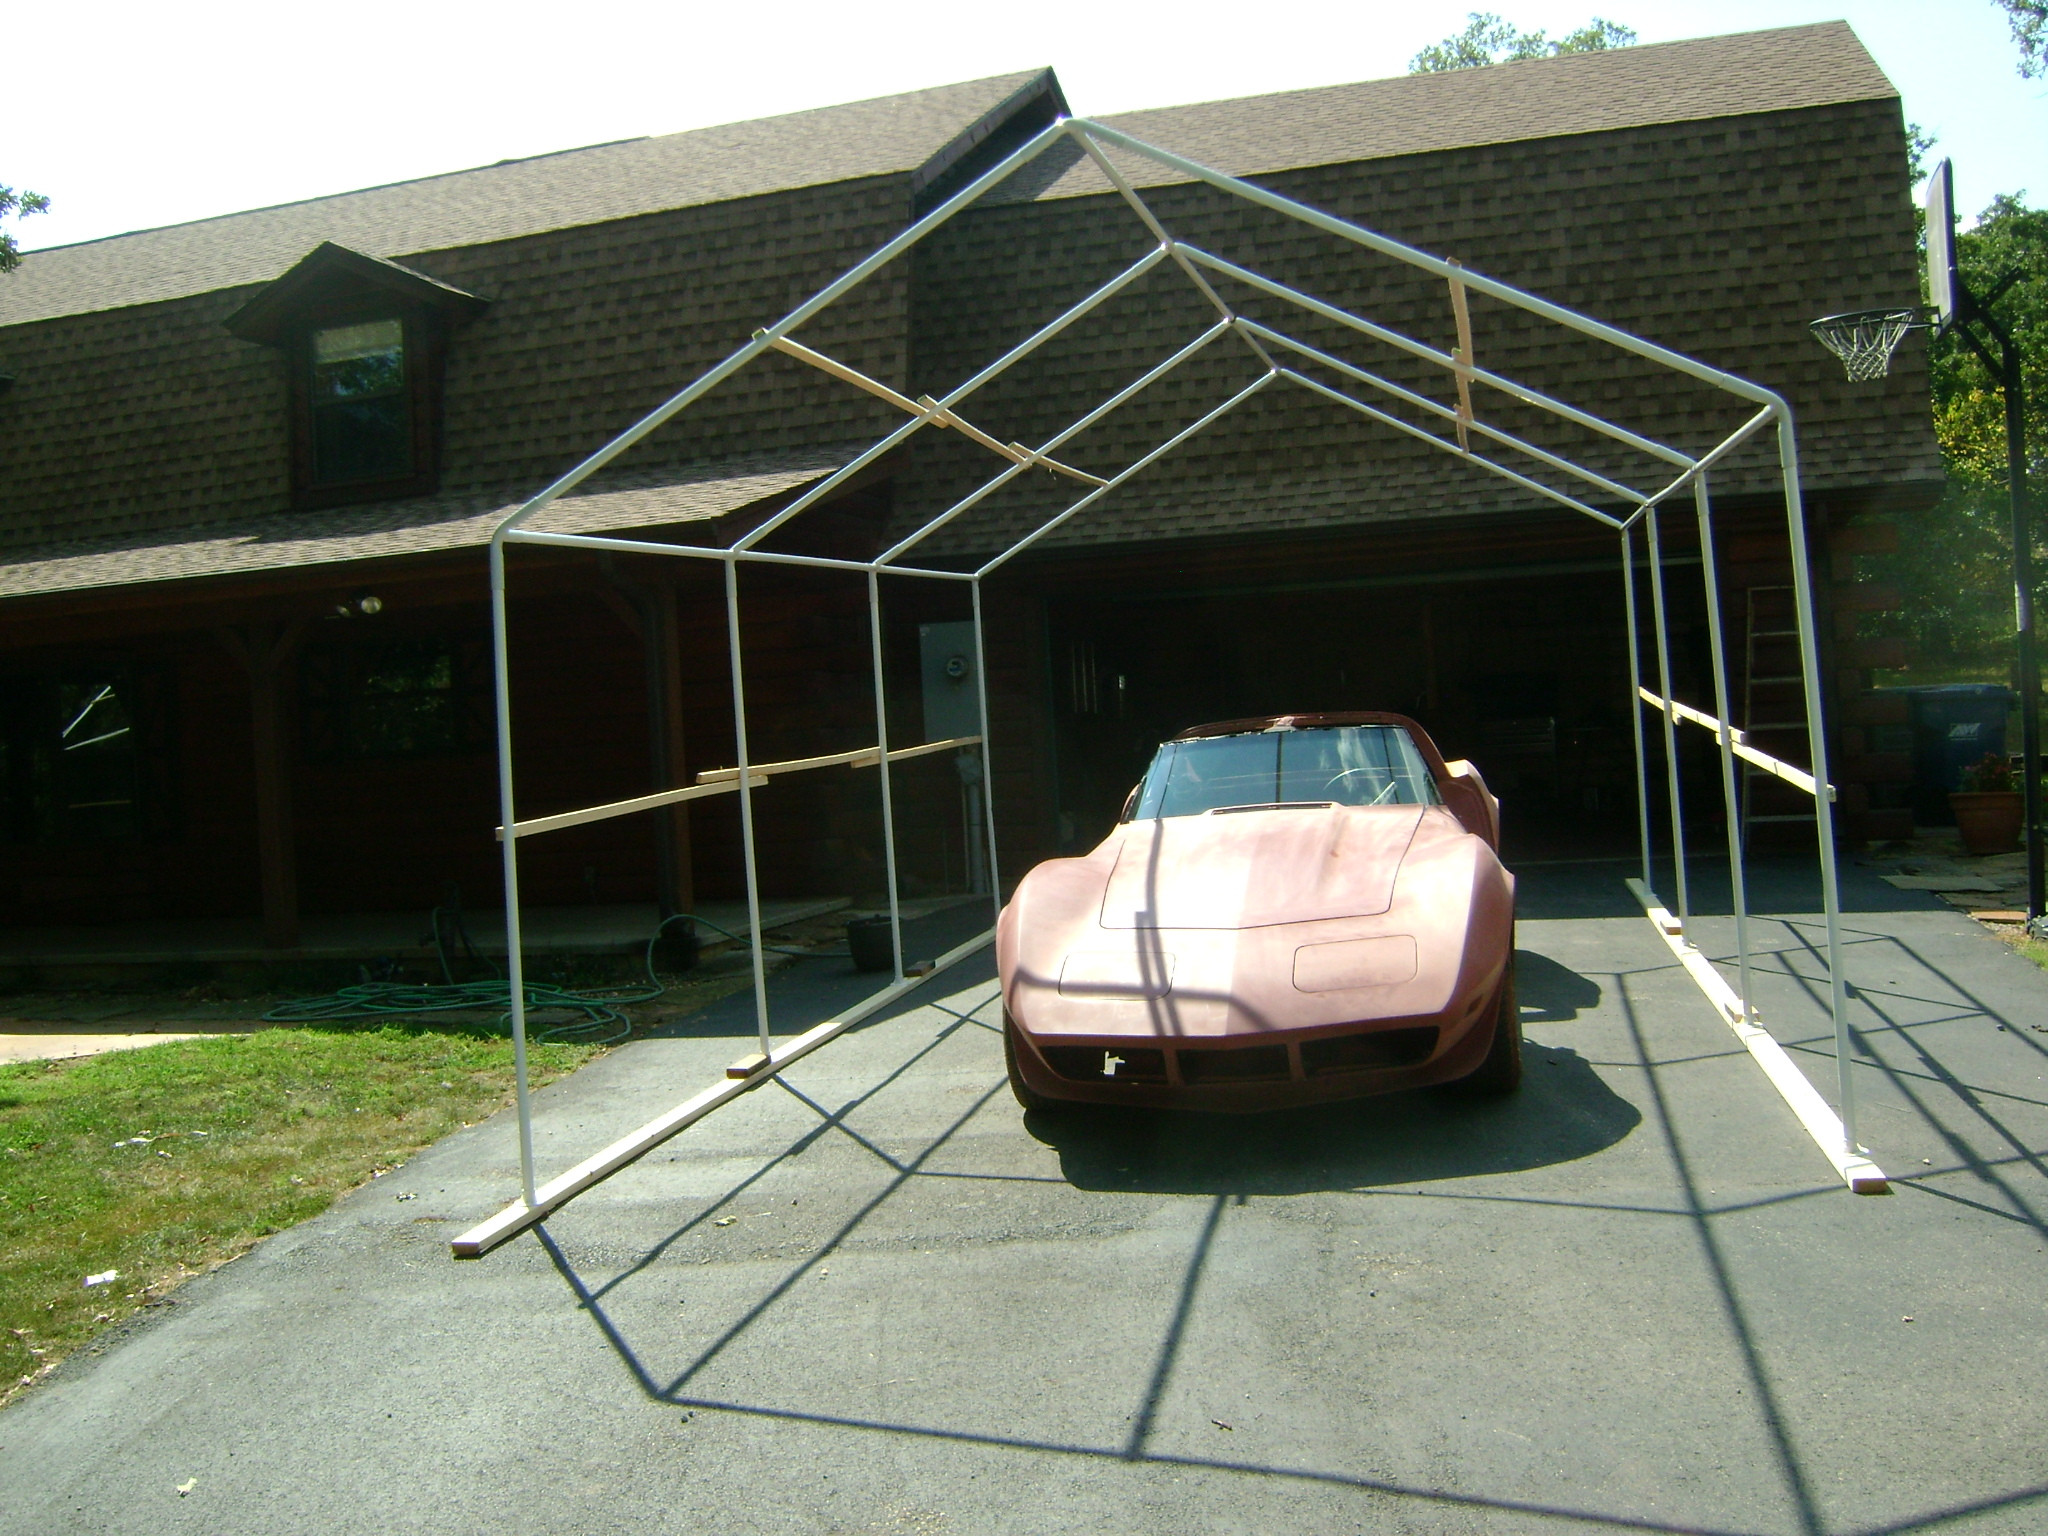 Best ideas about DIY Auto Paint Booth . Save or Pin My DIY paint booth CorvetteForum Chevrolet Corvette Now.